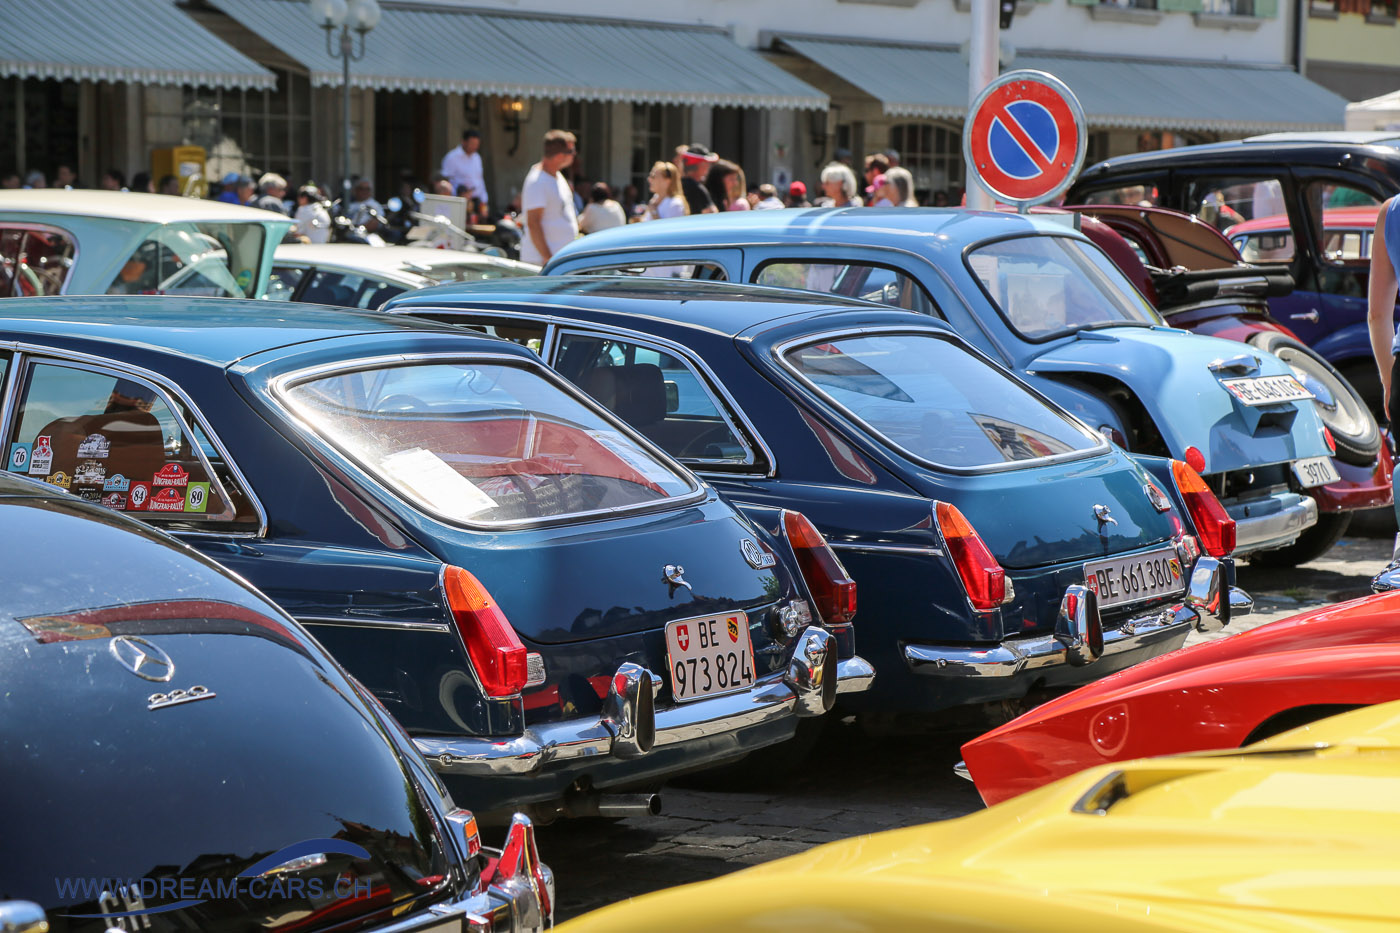 10. Internationales Aoldtimer Treffen in Aarberg 13. August 2017